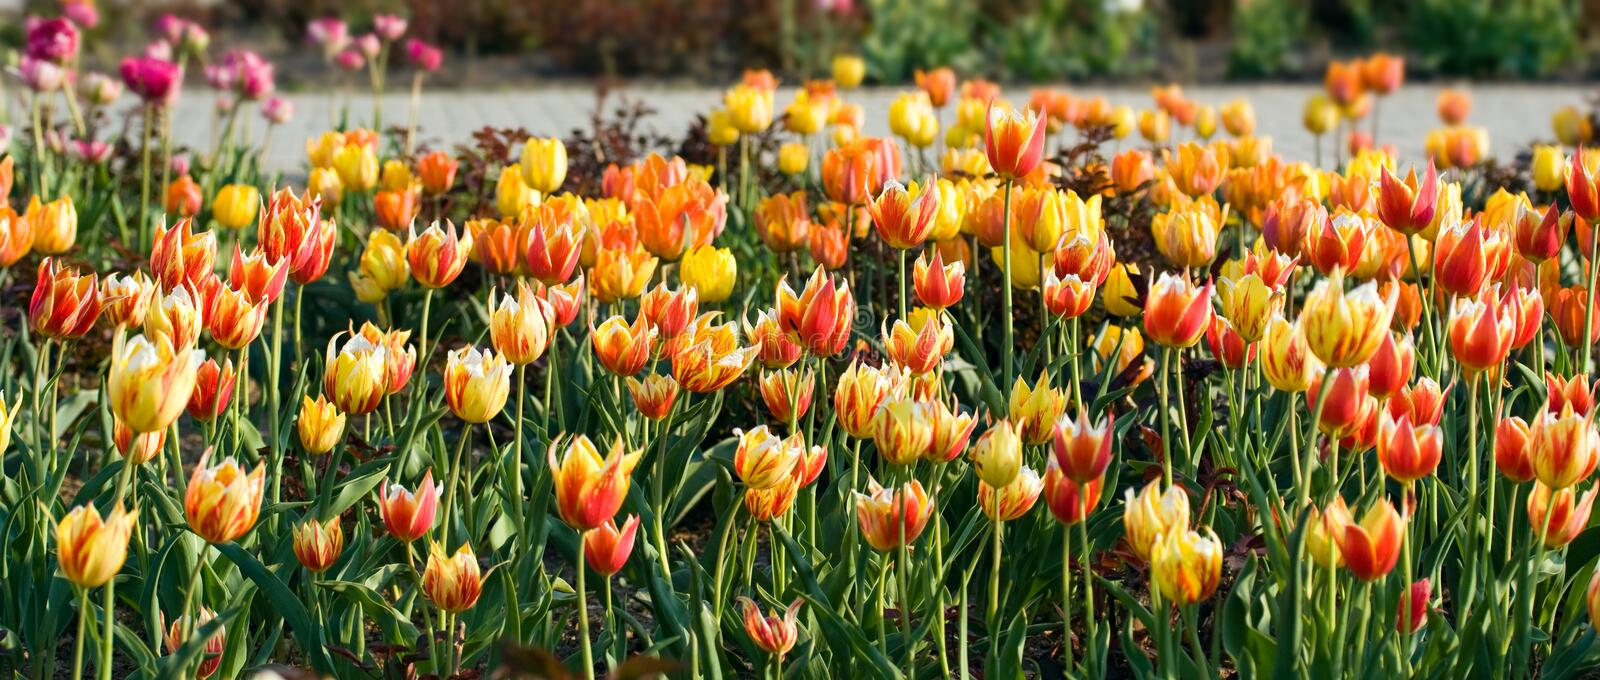 Download Red  And Yellow  Tulip Flowers. Stock Image - Image: 12493729